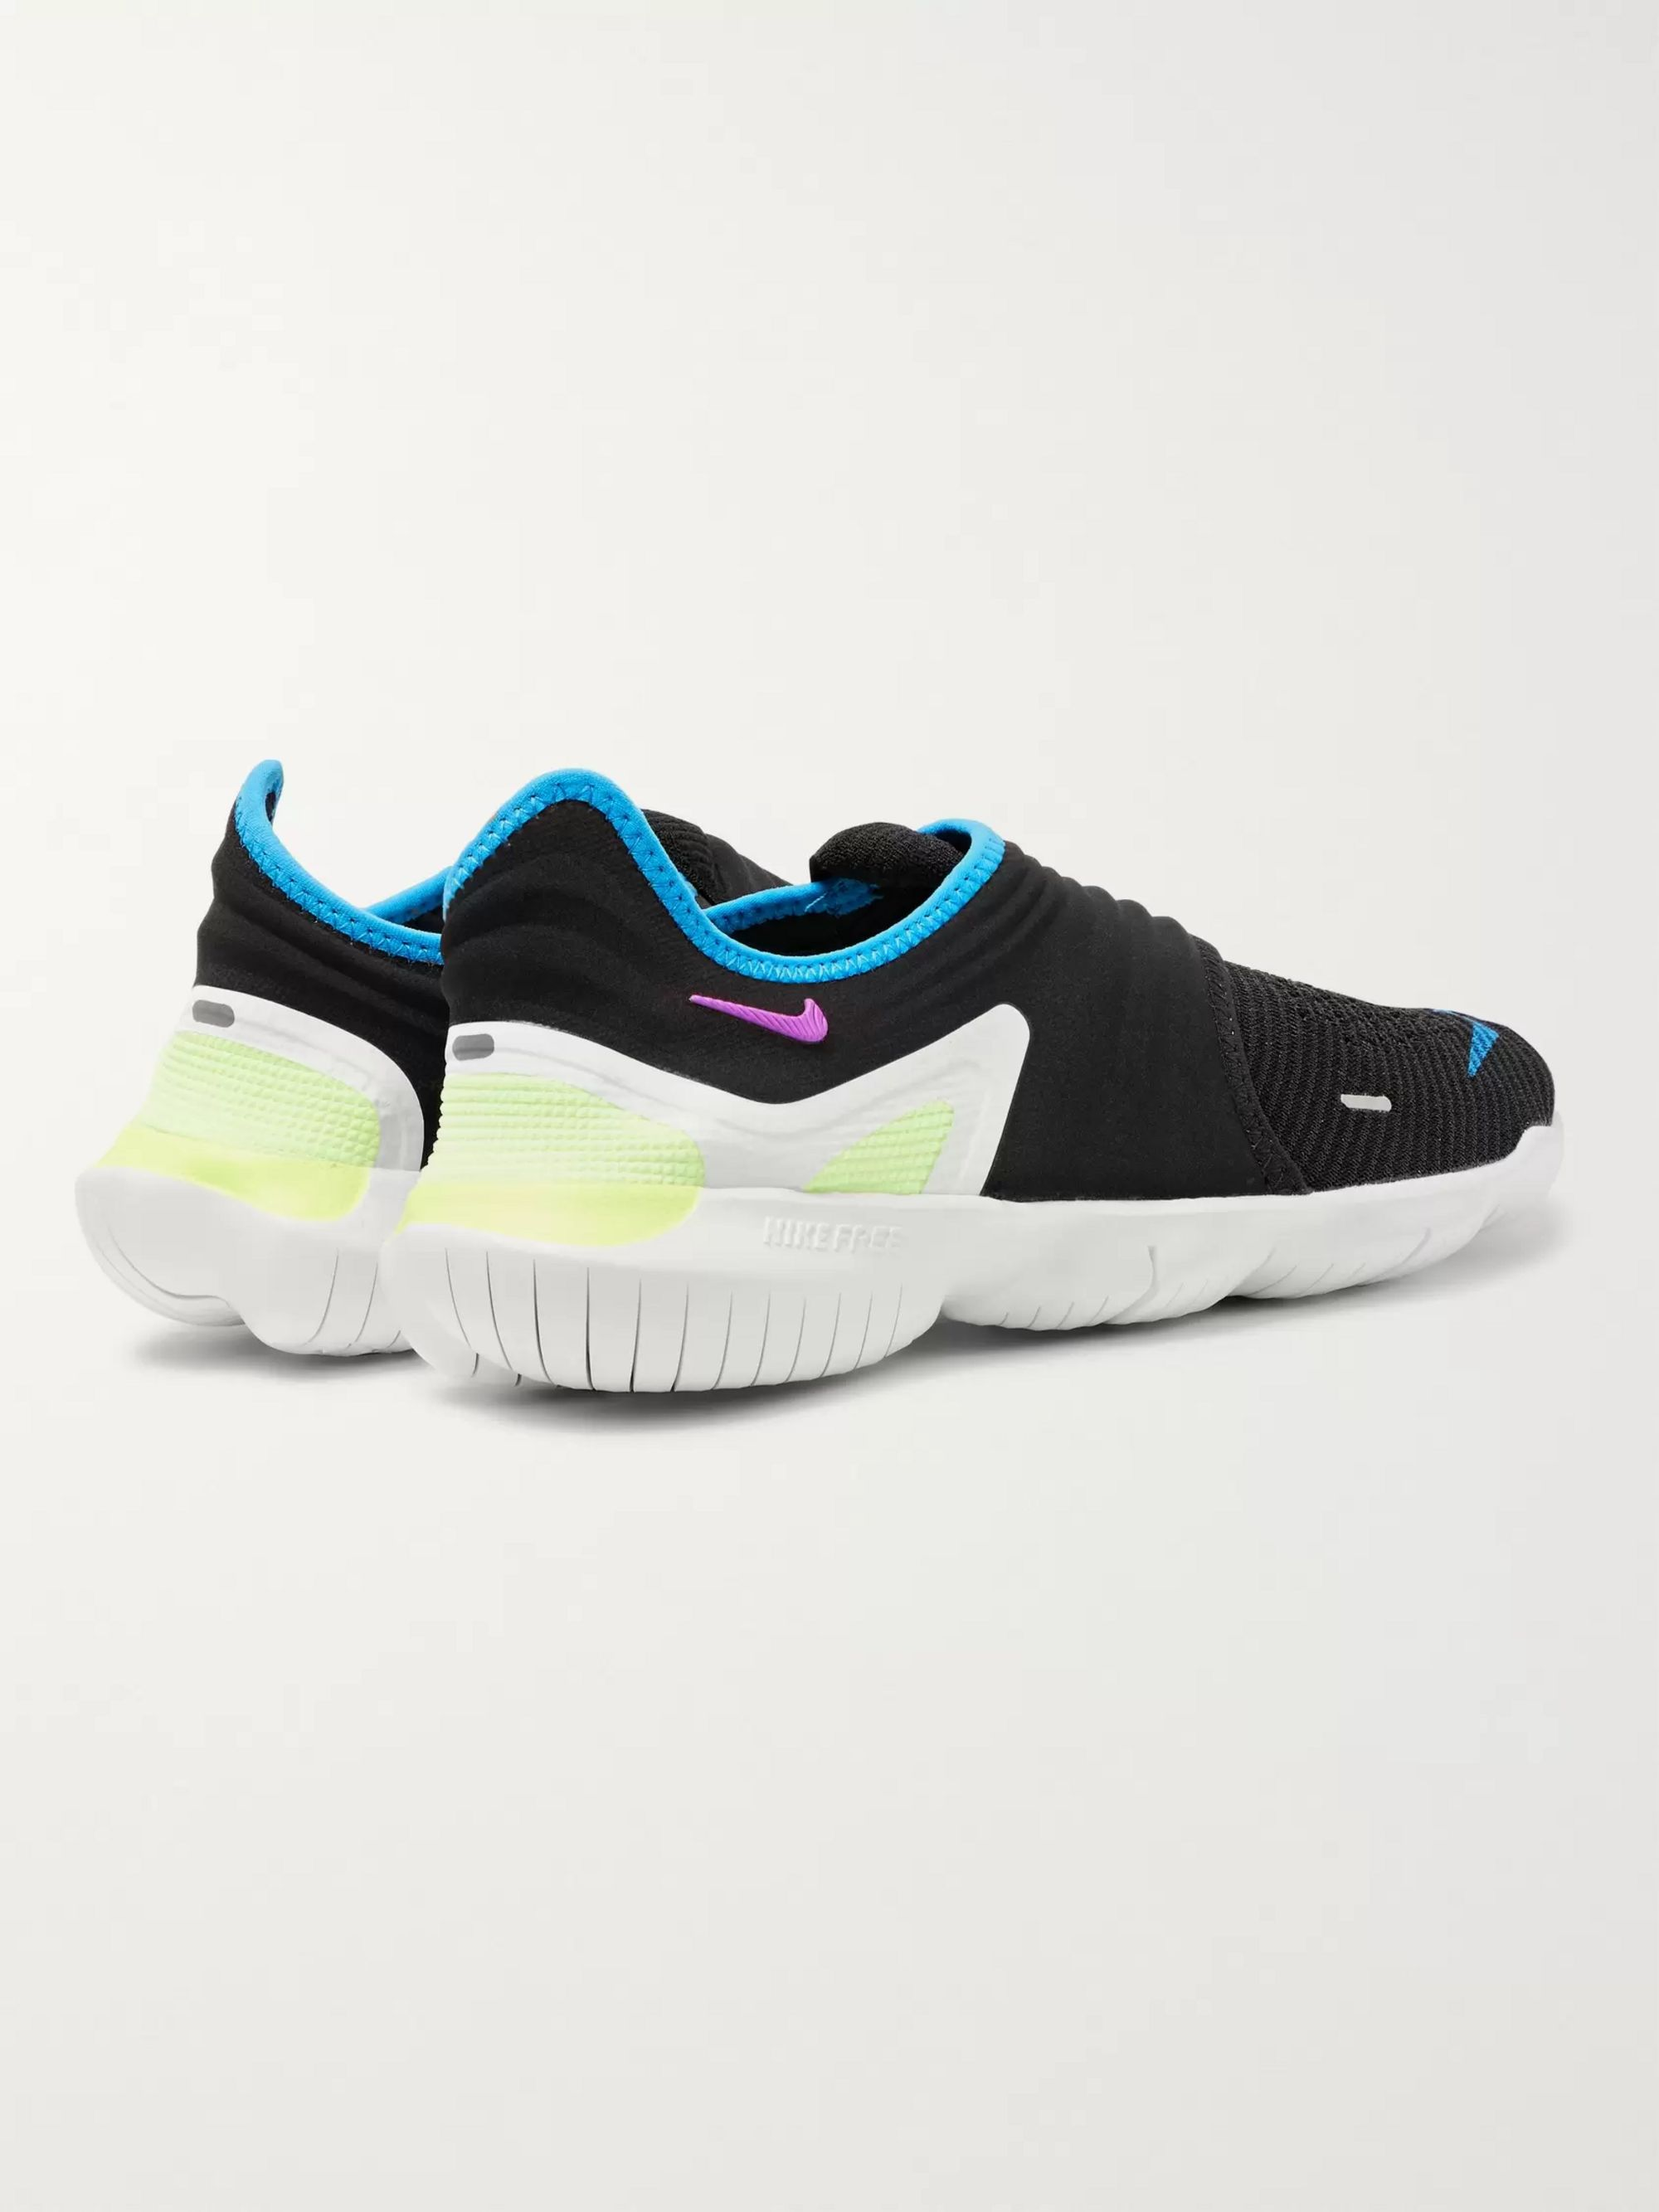 Free RN 3.0 Flynit and Neoprene Slip On Sneakers